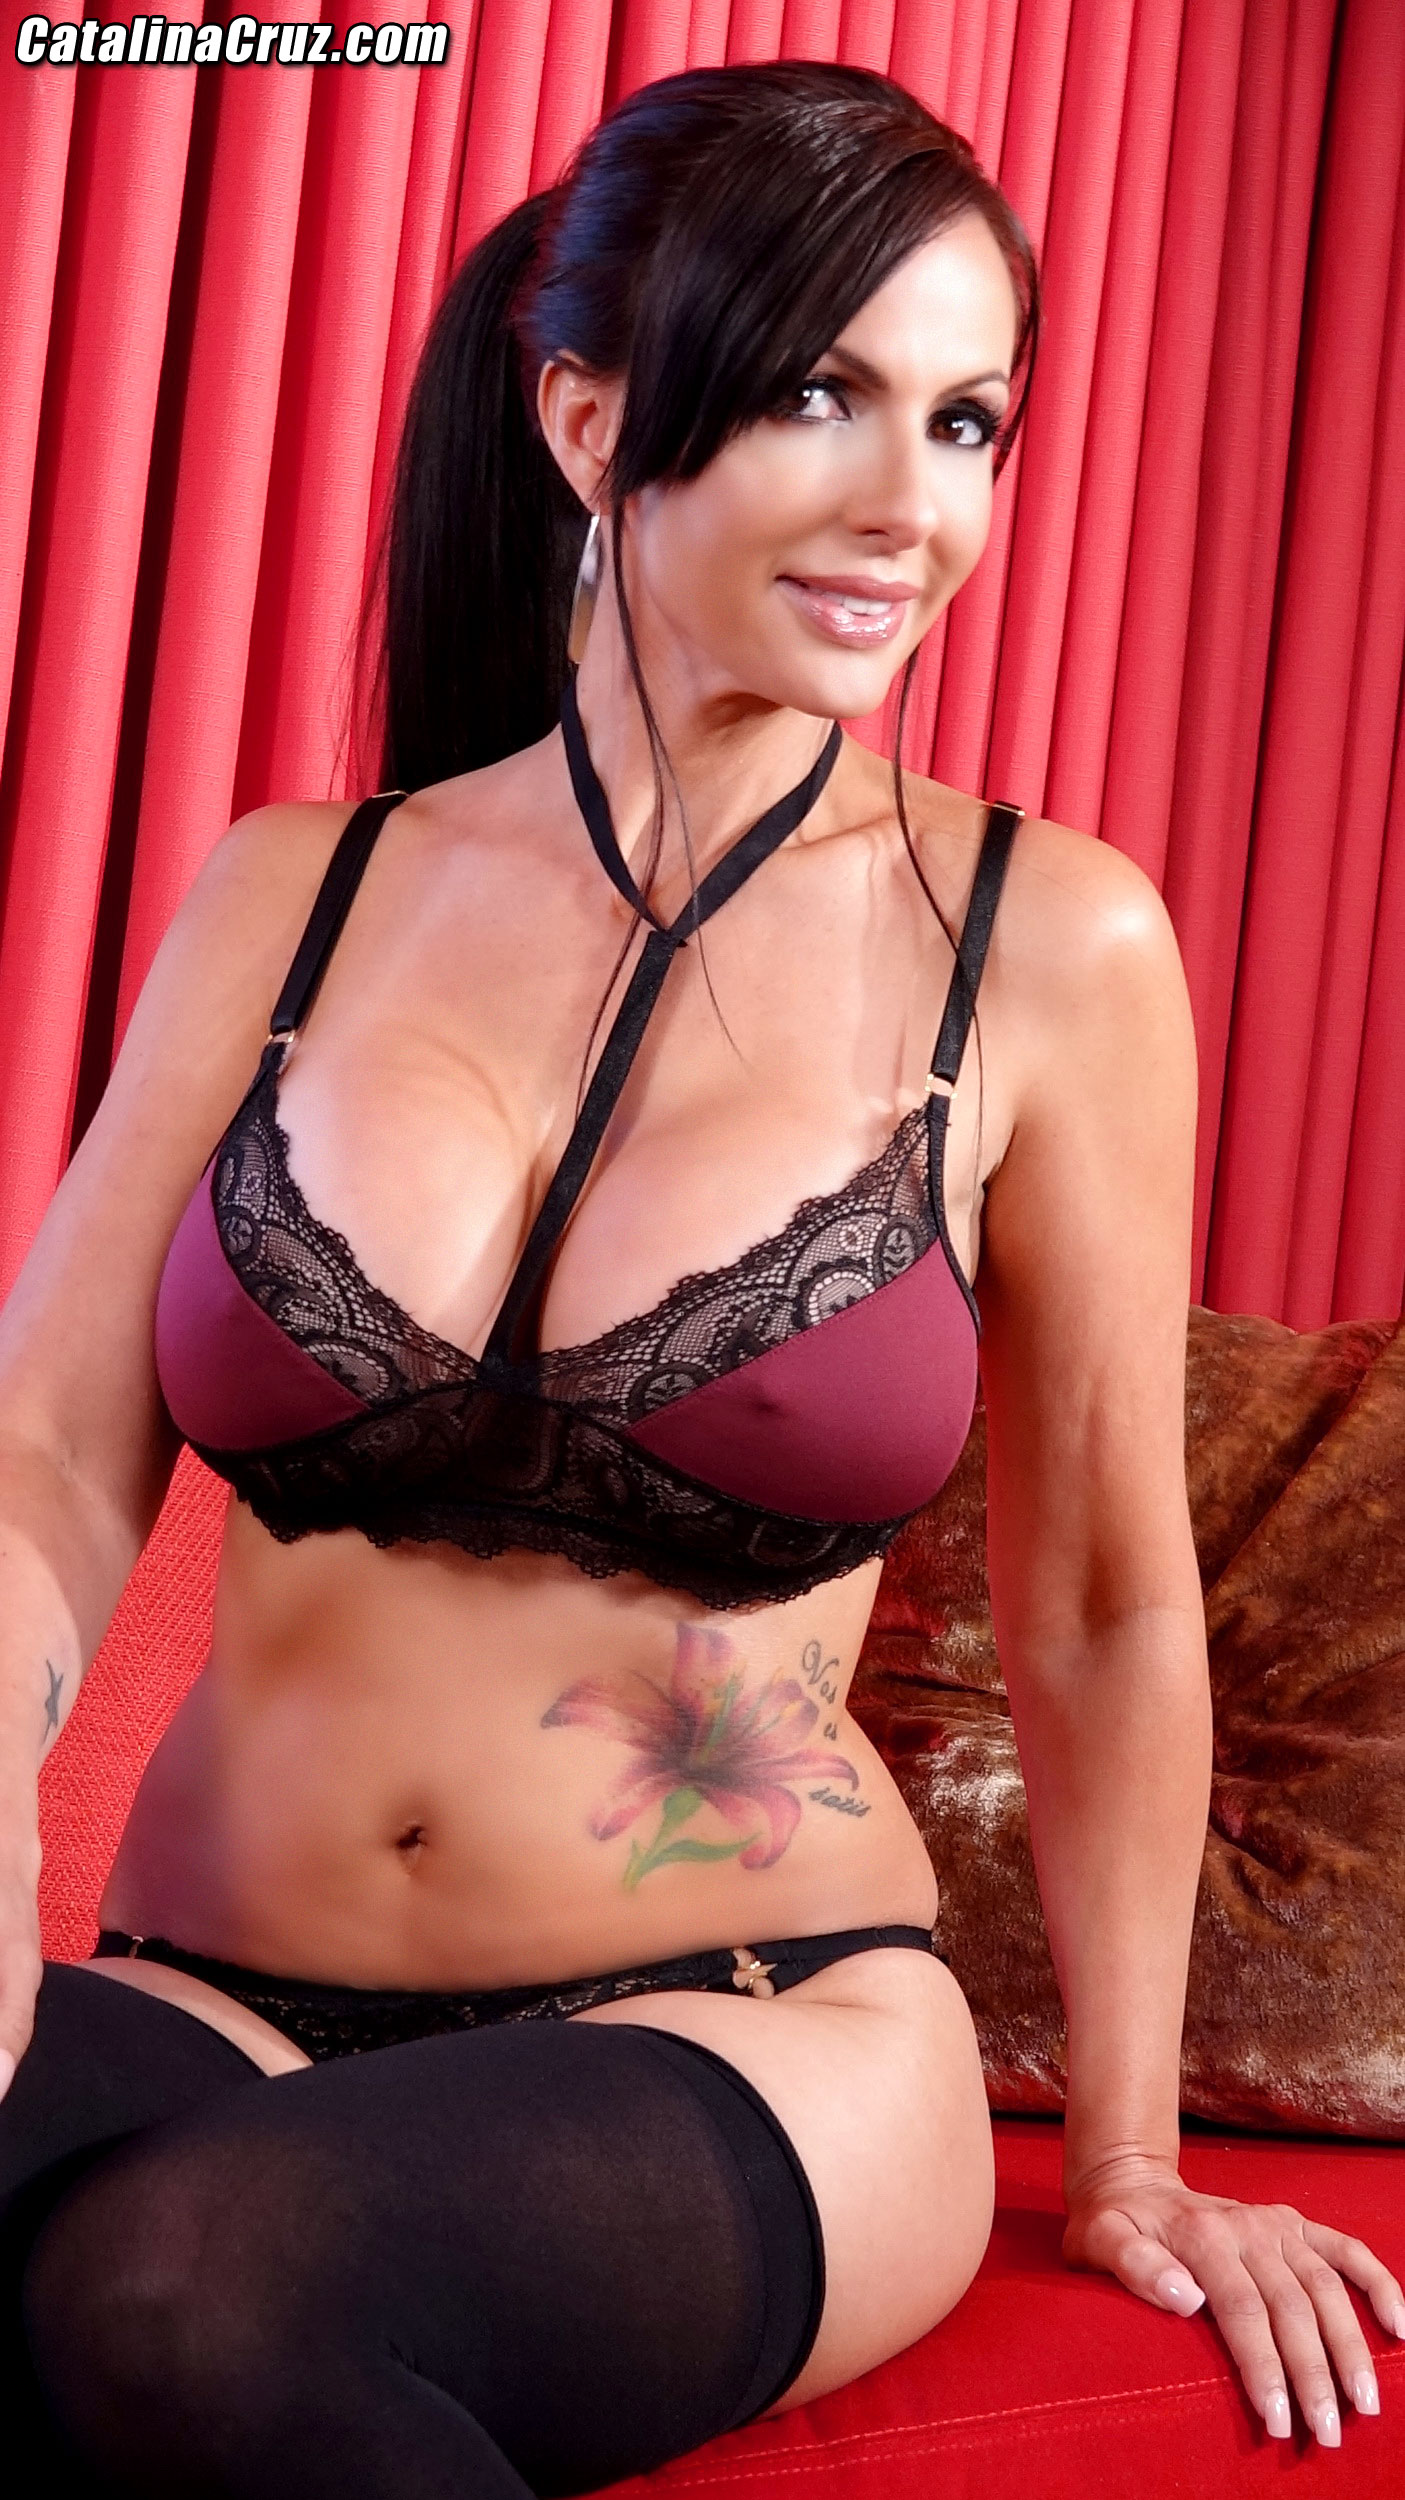 Catalina Cruz Big Tits Maroon Bra and stockings